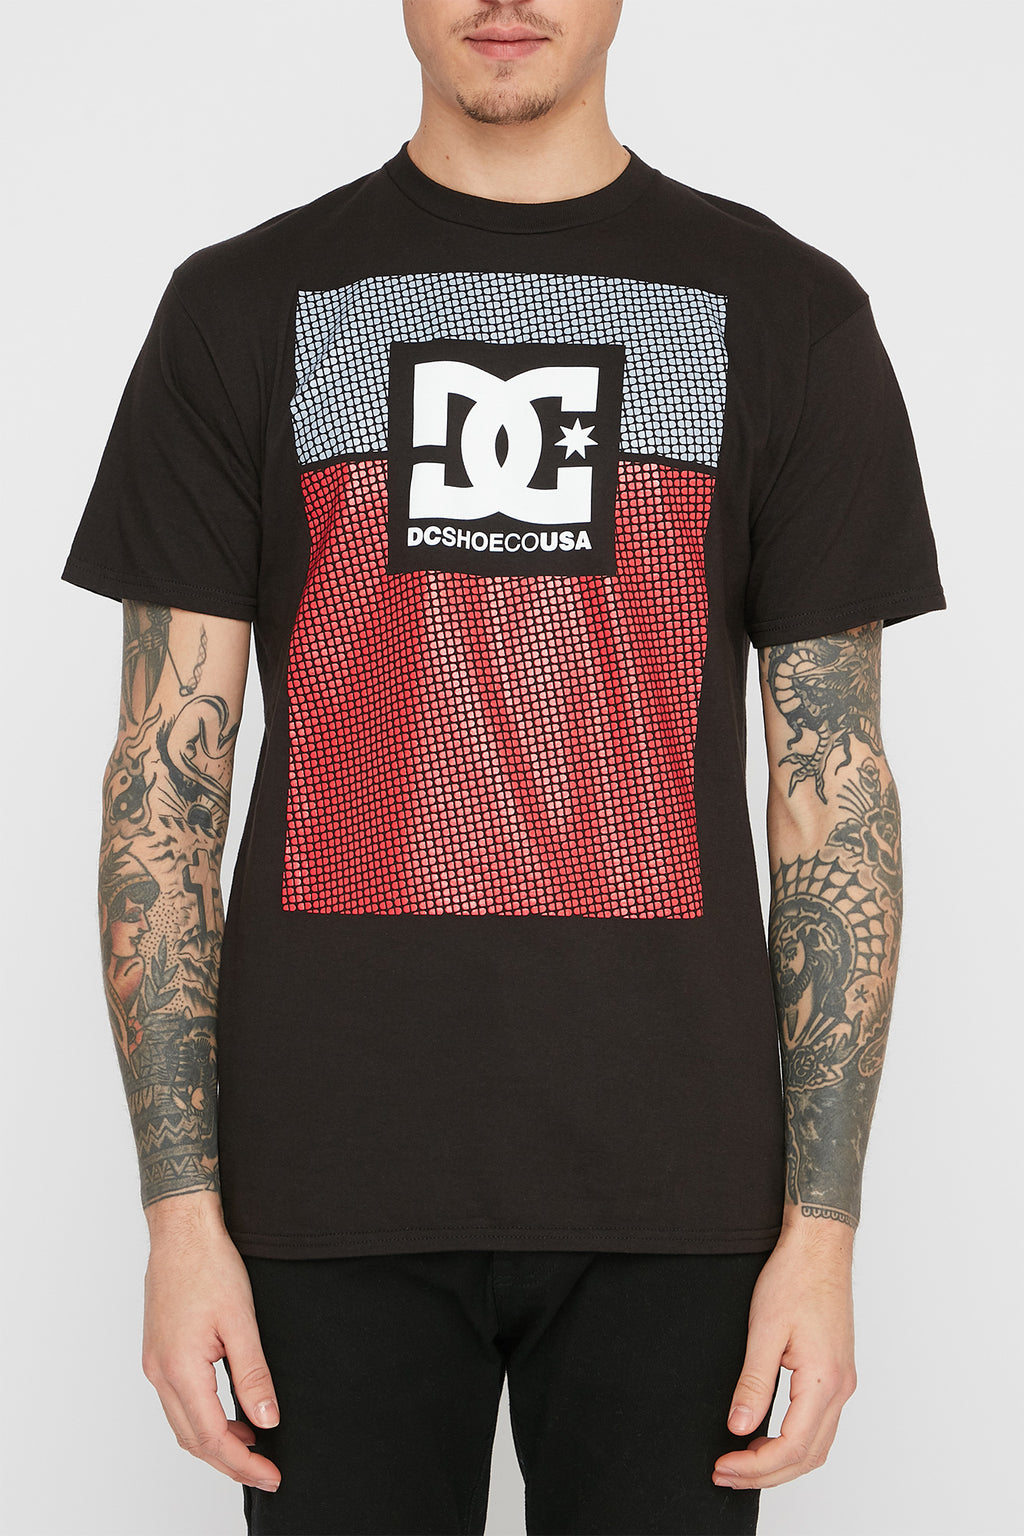 DC Mens Pill Resident T-Shirt - Black